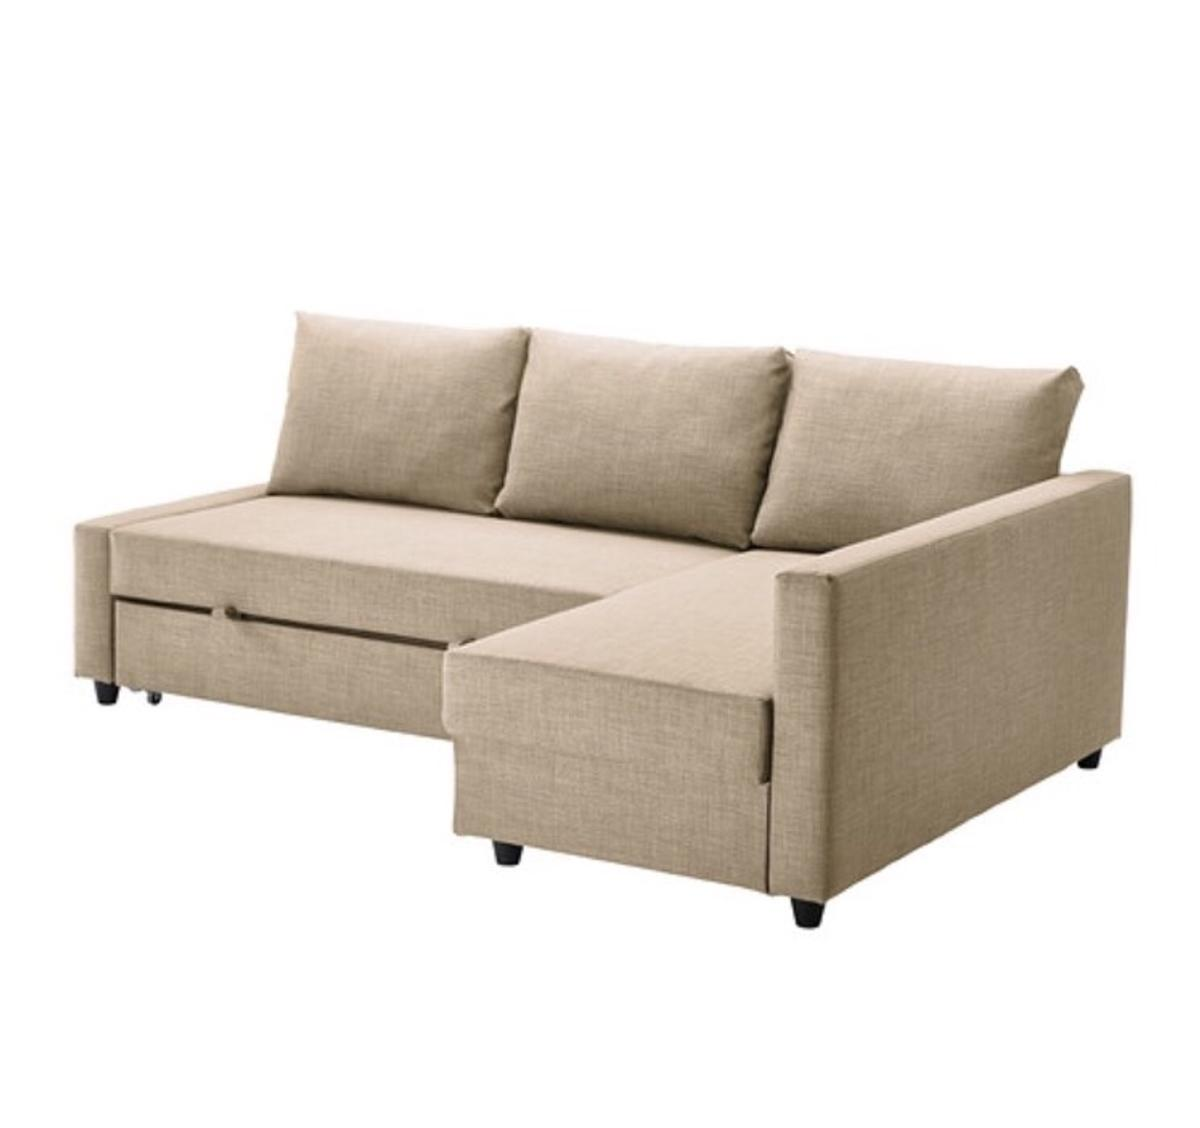 Bett Sofa Ikea Strandmon Couch Bettsofa Beige